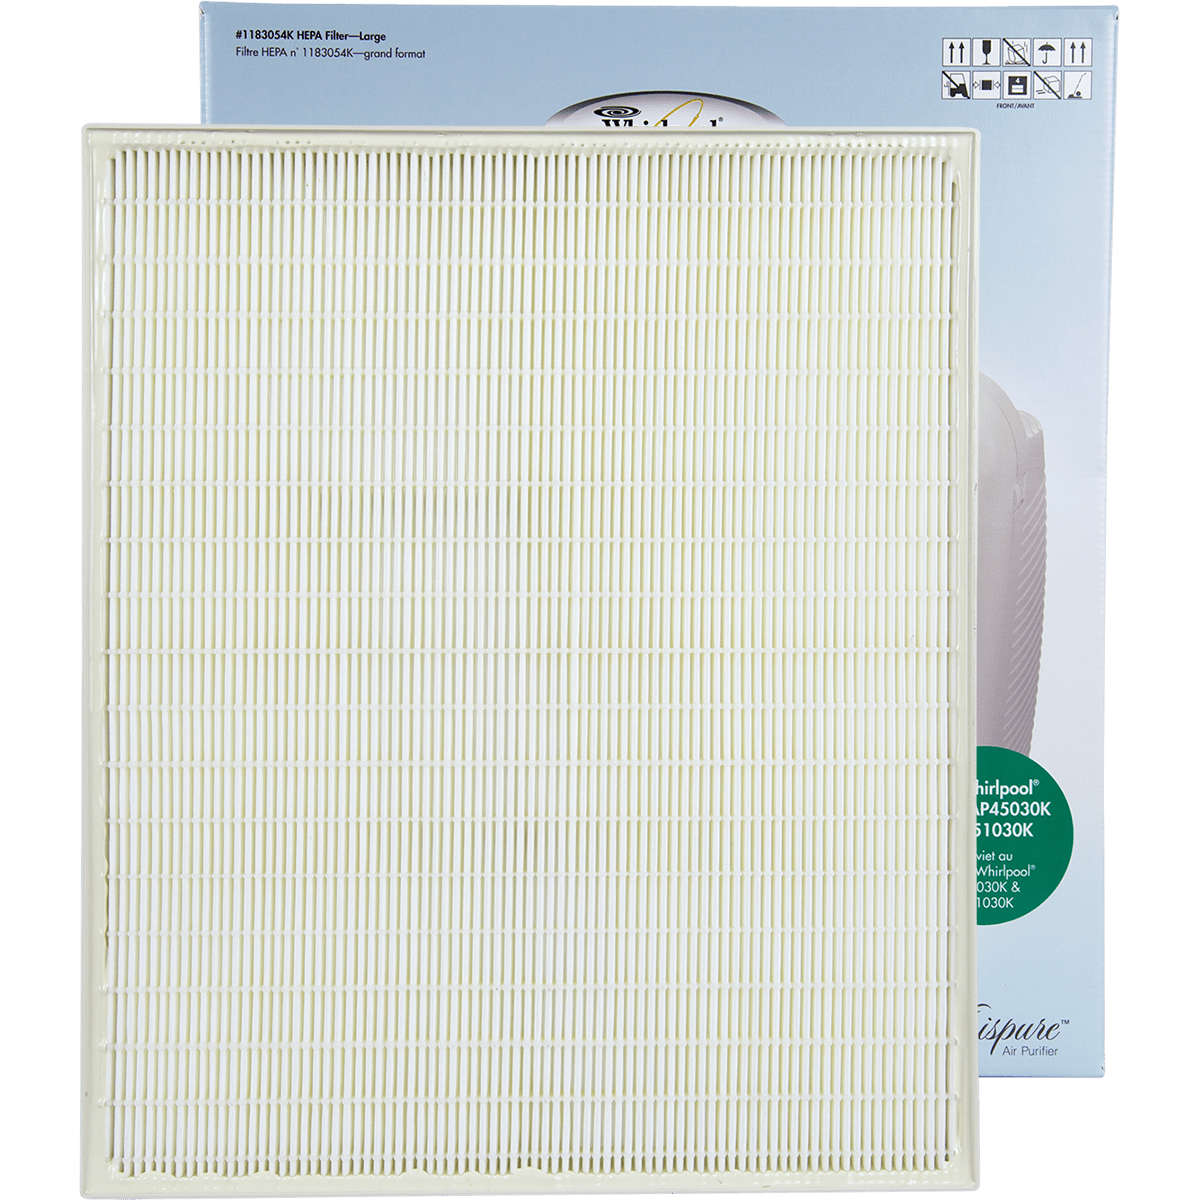 Genuine Whirlpool True HEPA Filter - Large (1183054K) wh610